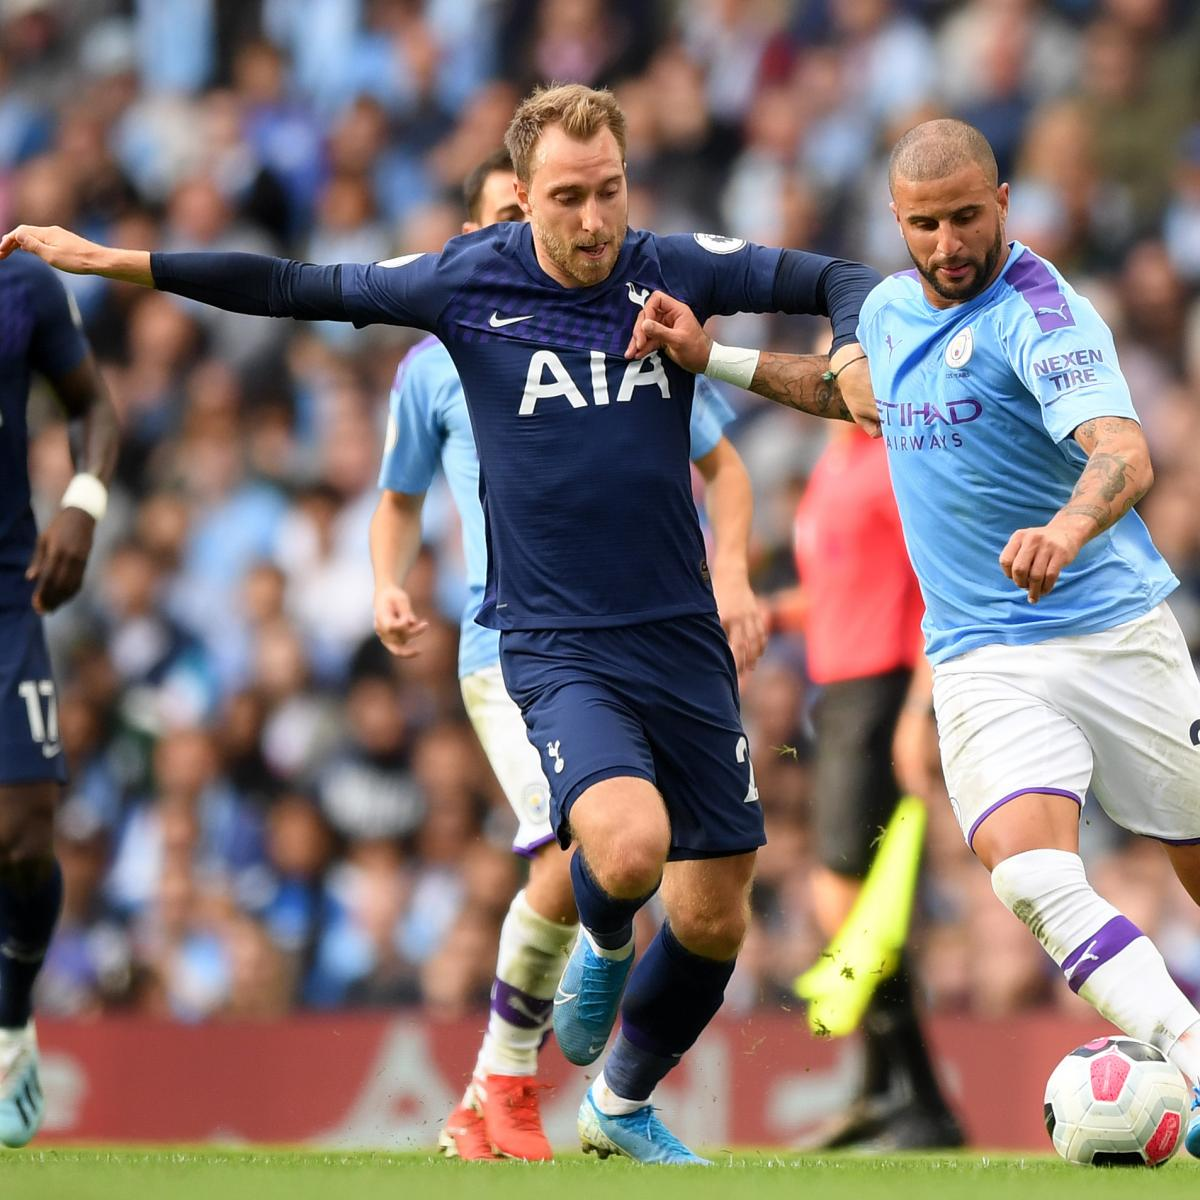 Lucas Moura Spurs Goals: Manchester City, Tottenham Hotspur Draw 2-2 In Week 2